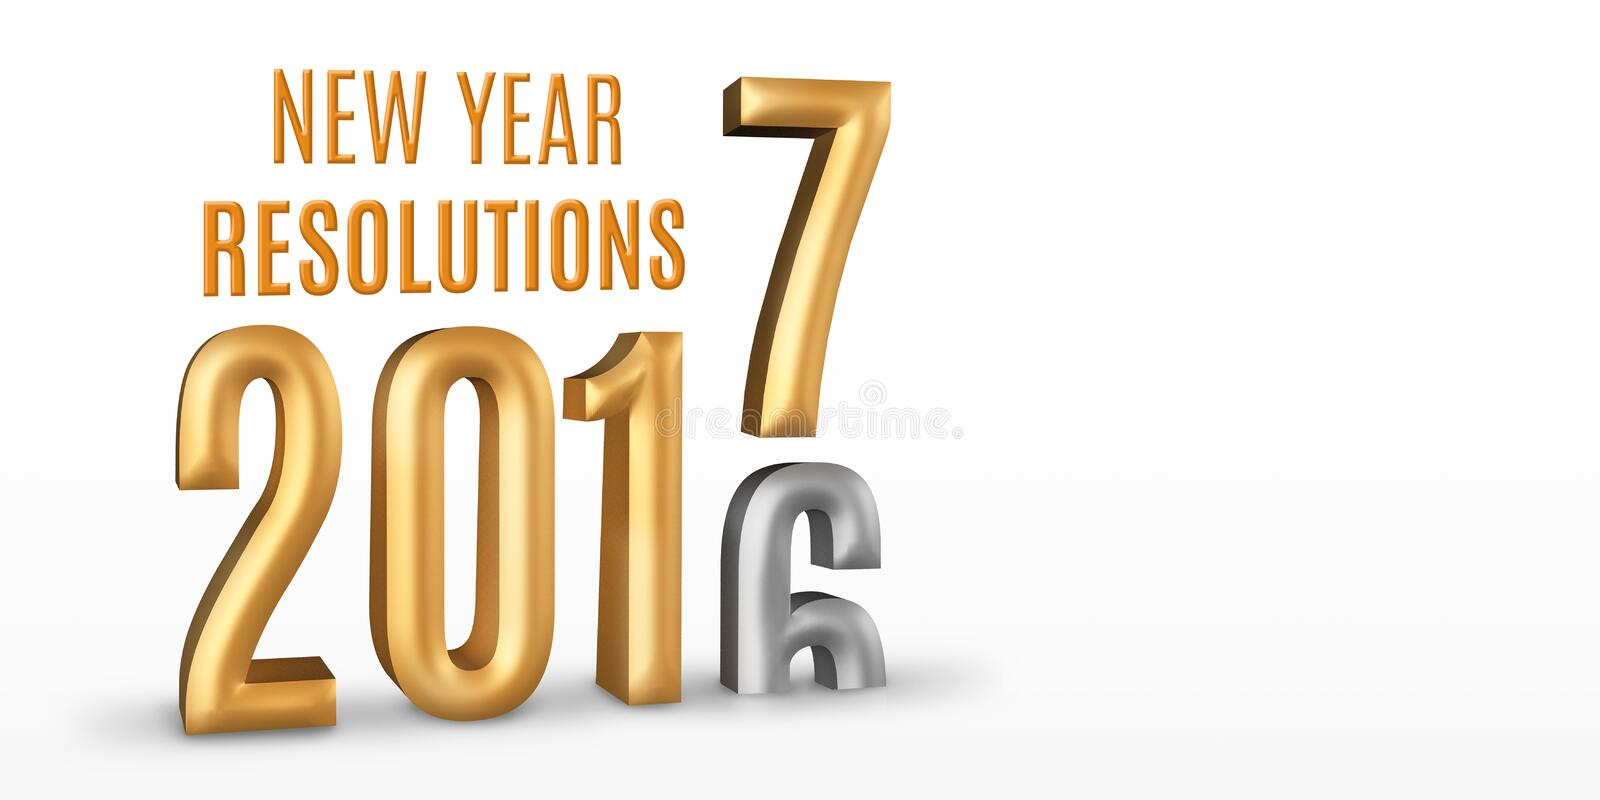 New Year Resolutions 2016 gold number year change to 2017 new ye royalty free illustration